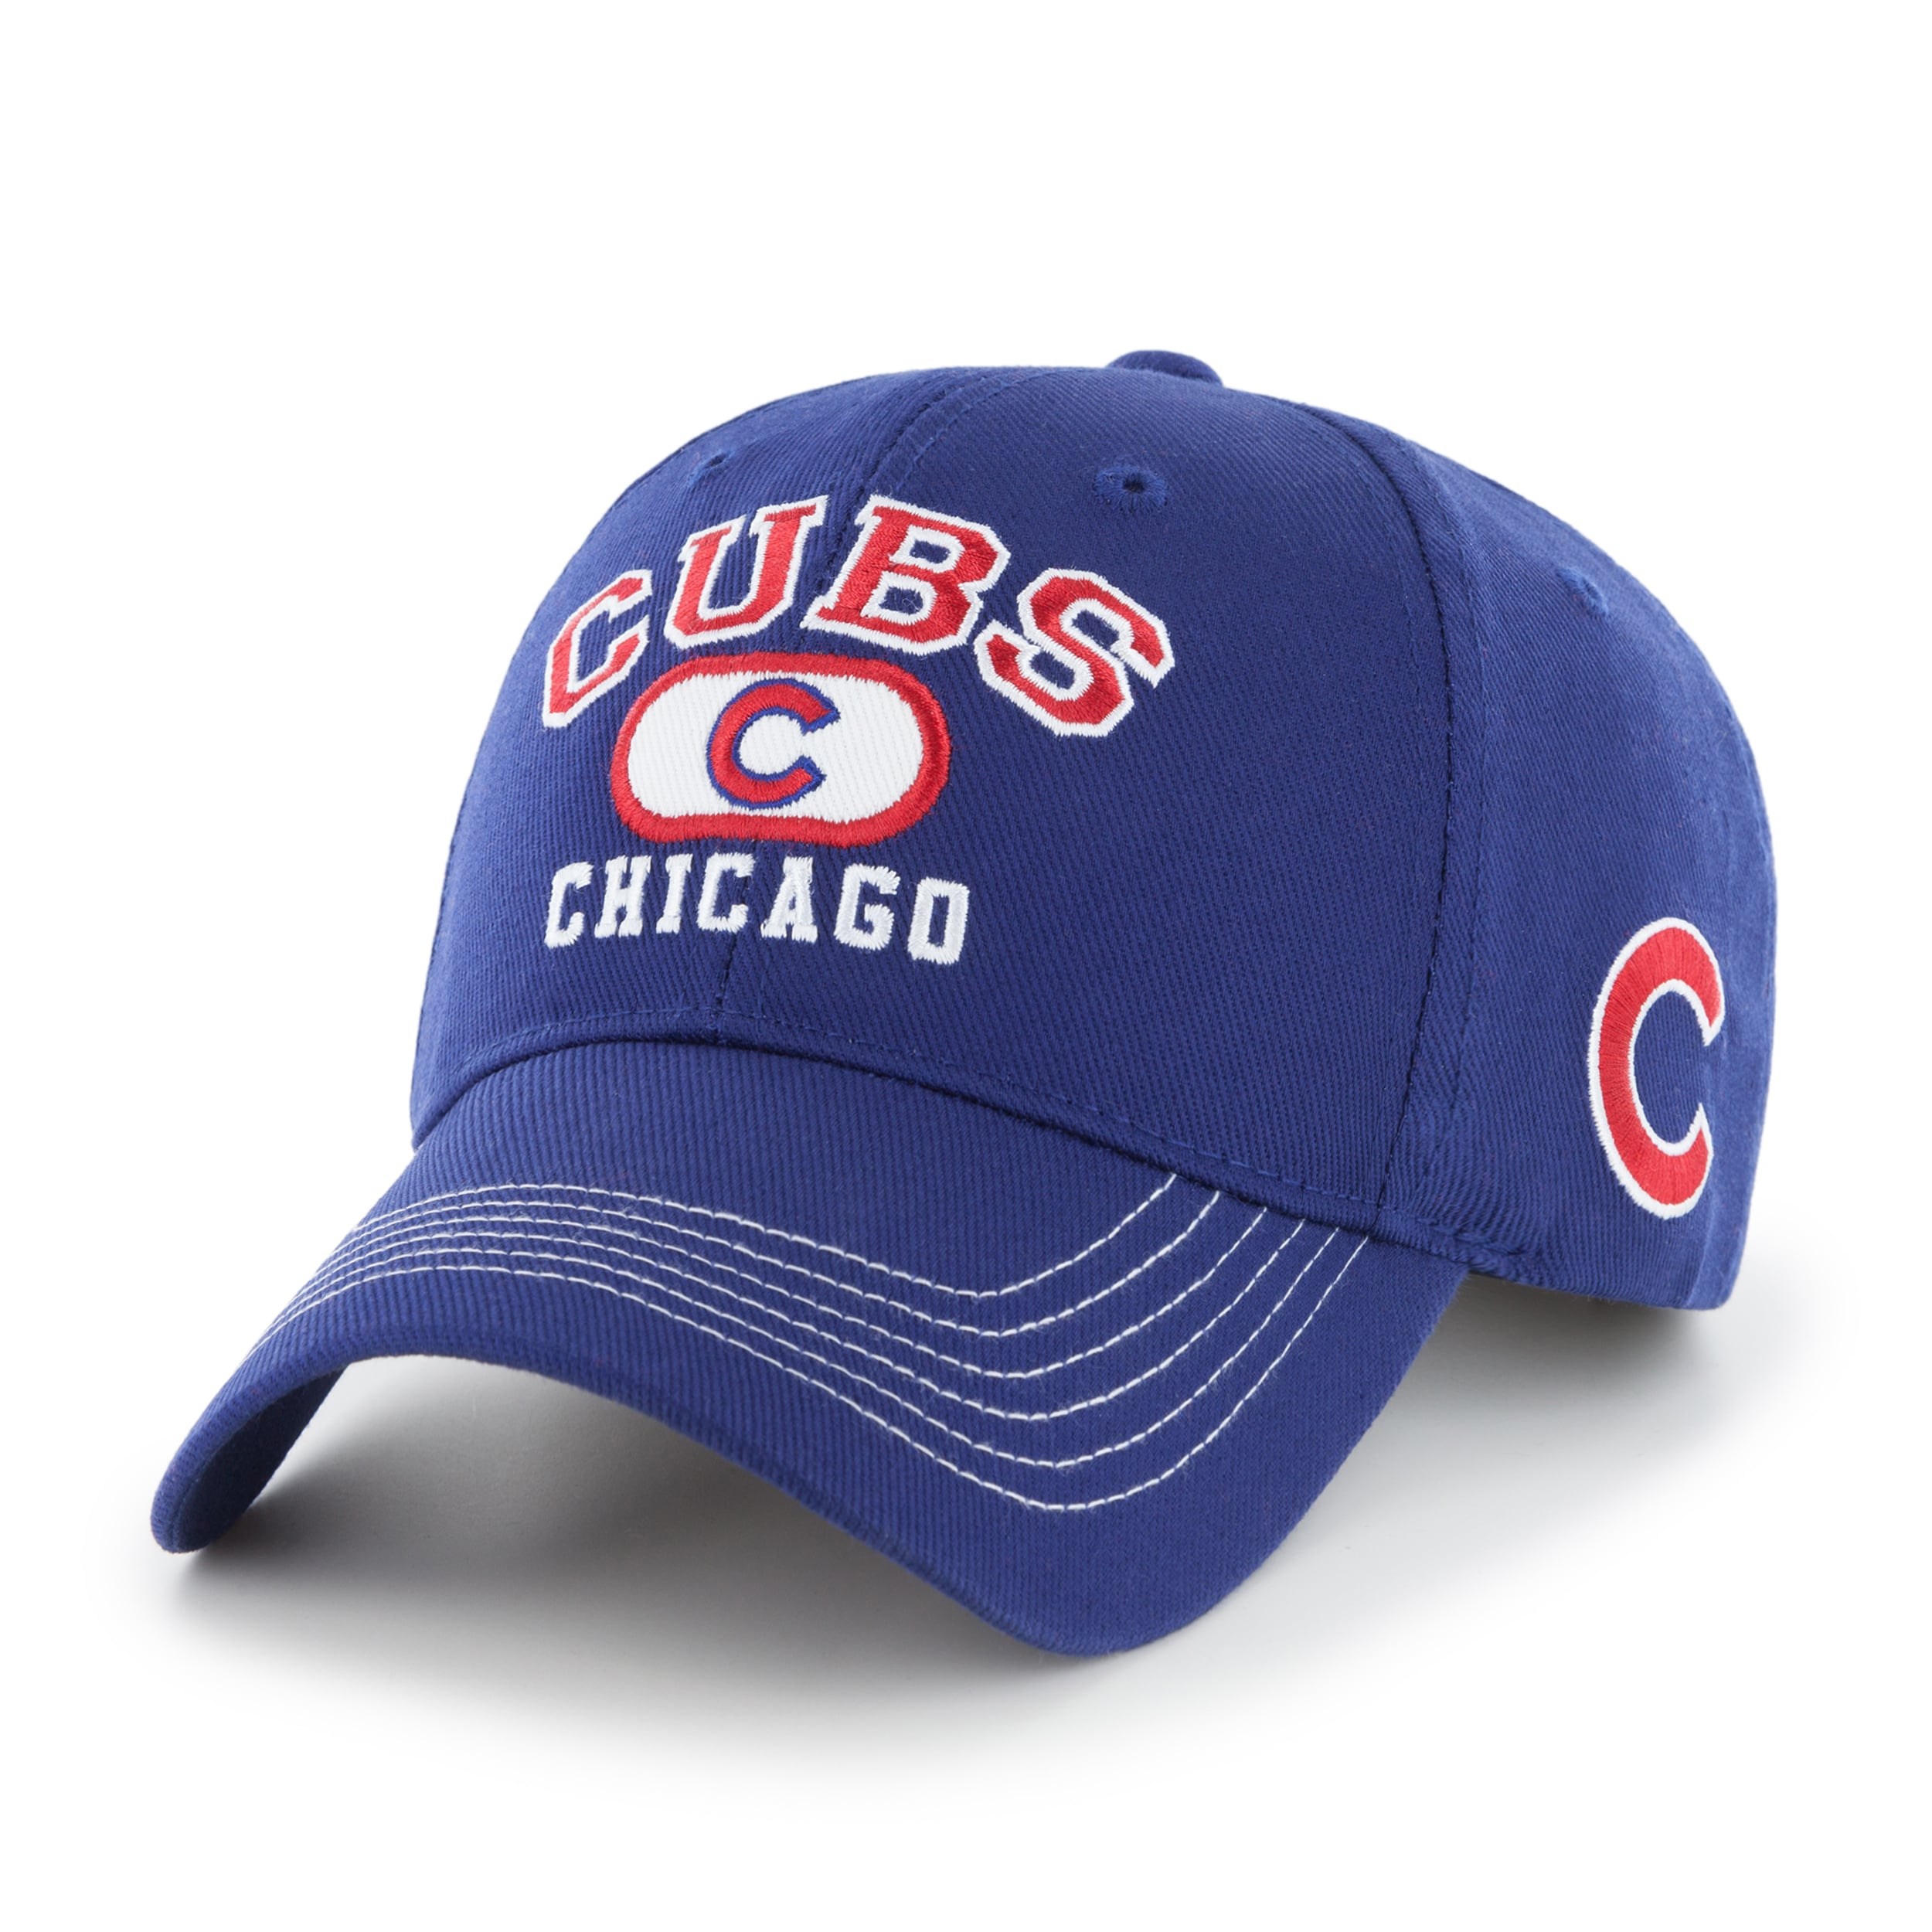 MLB Chicago Cubs Draft Cap / Hat by Fan Favorite